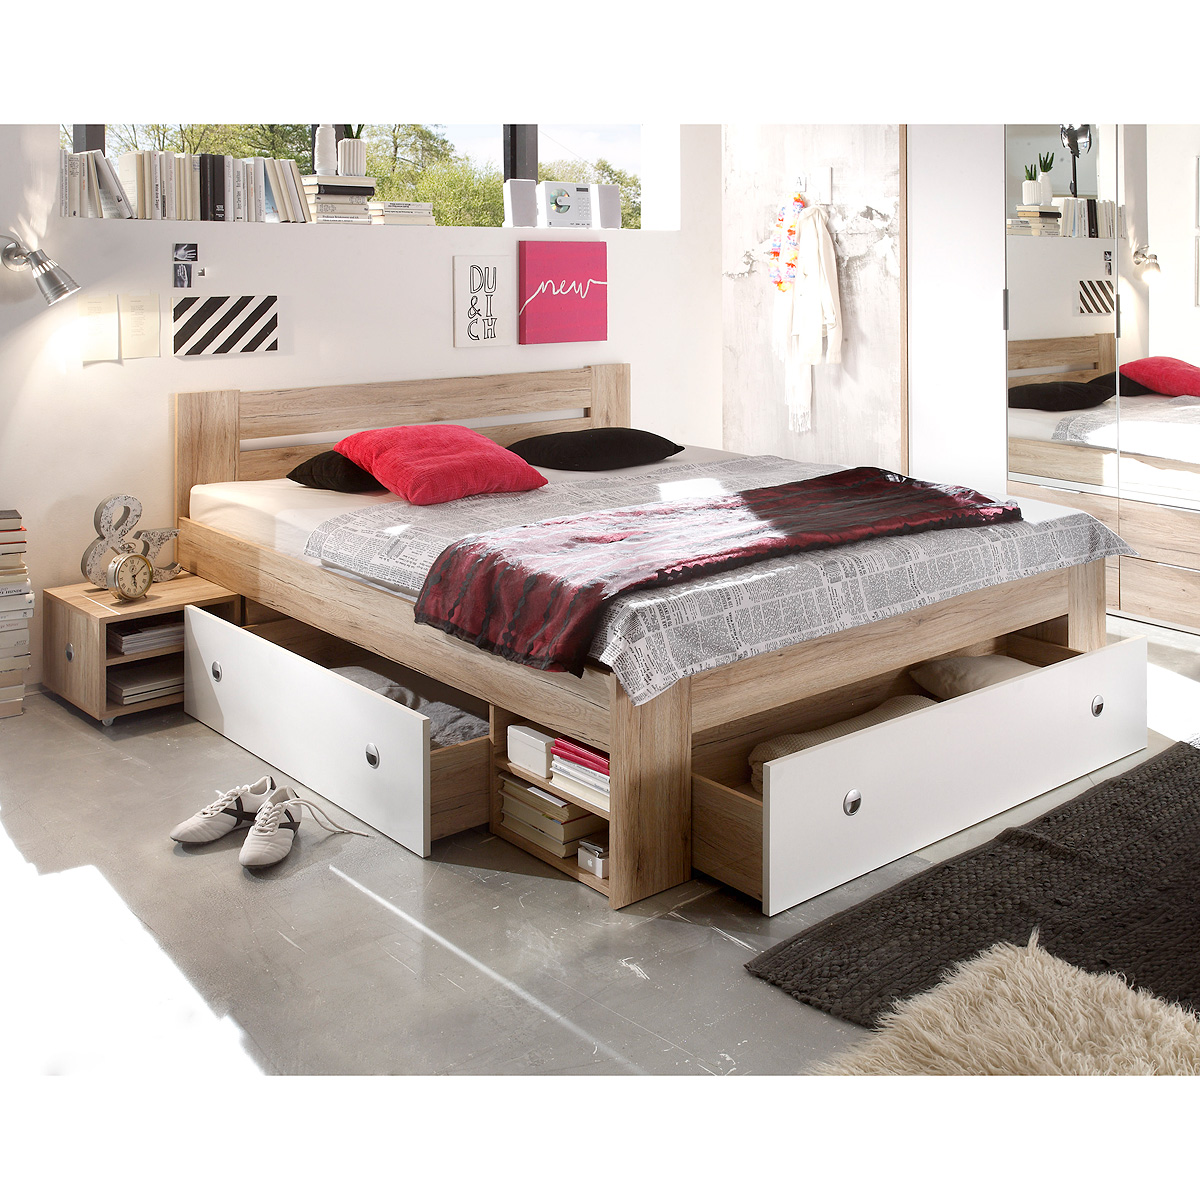 bett stefan funktionsbett schlafzimmerbett in san remo eiche weiss. Black Bedroom Furniture Sets. Home Design Ideas